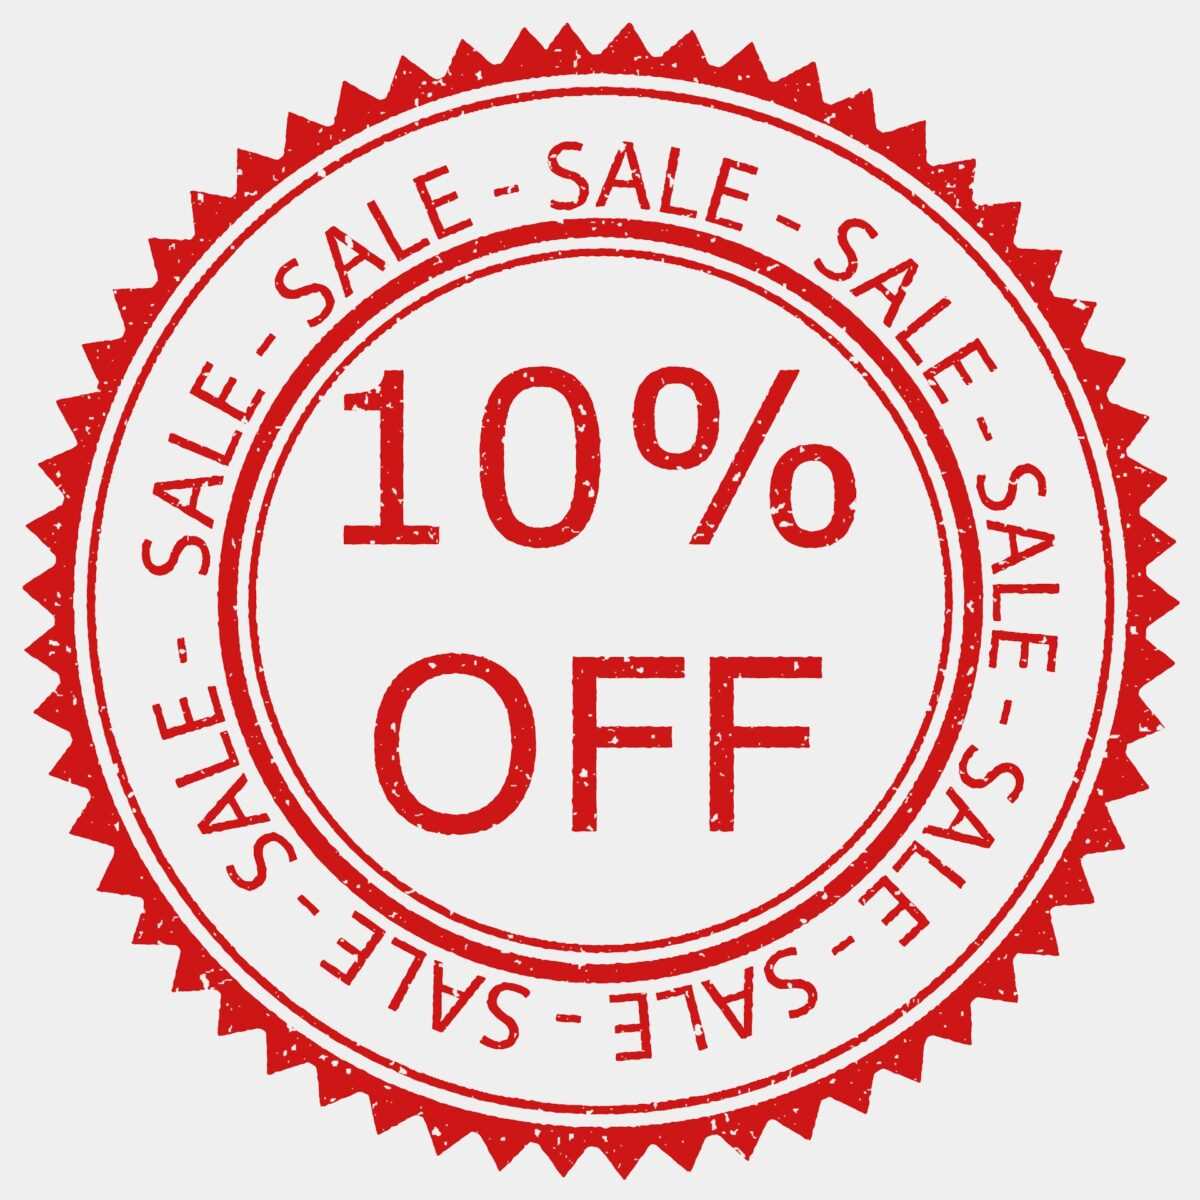 10 Days of Discounts